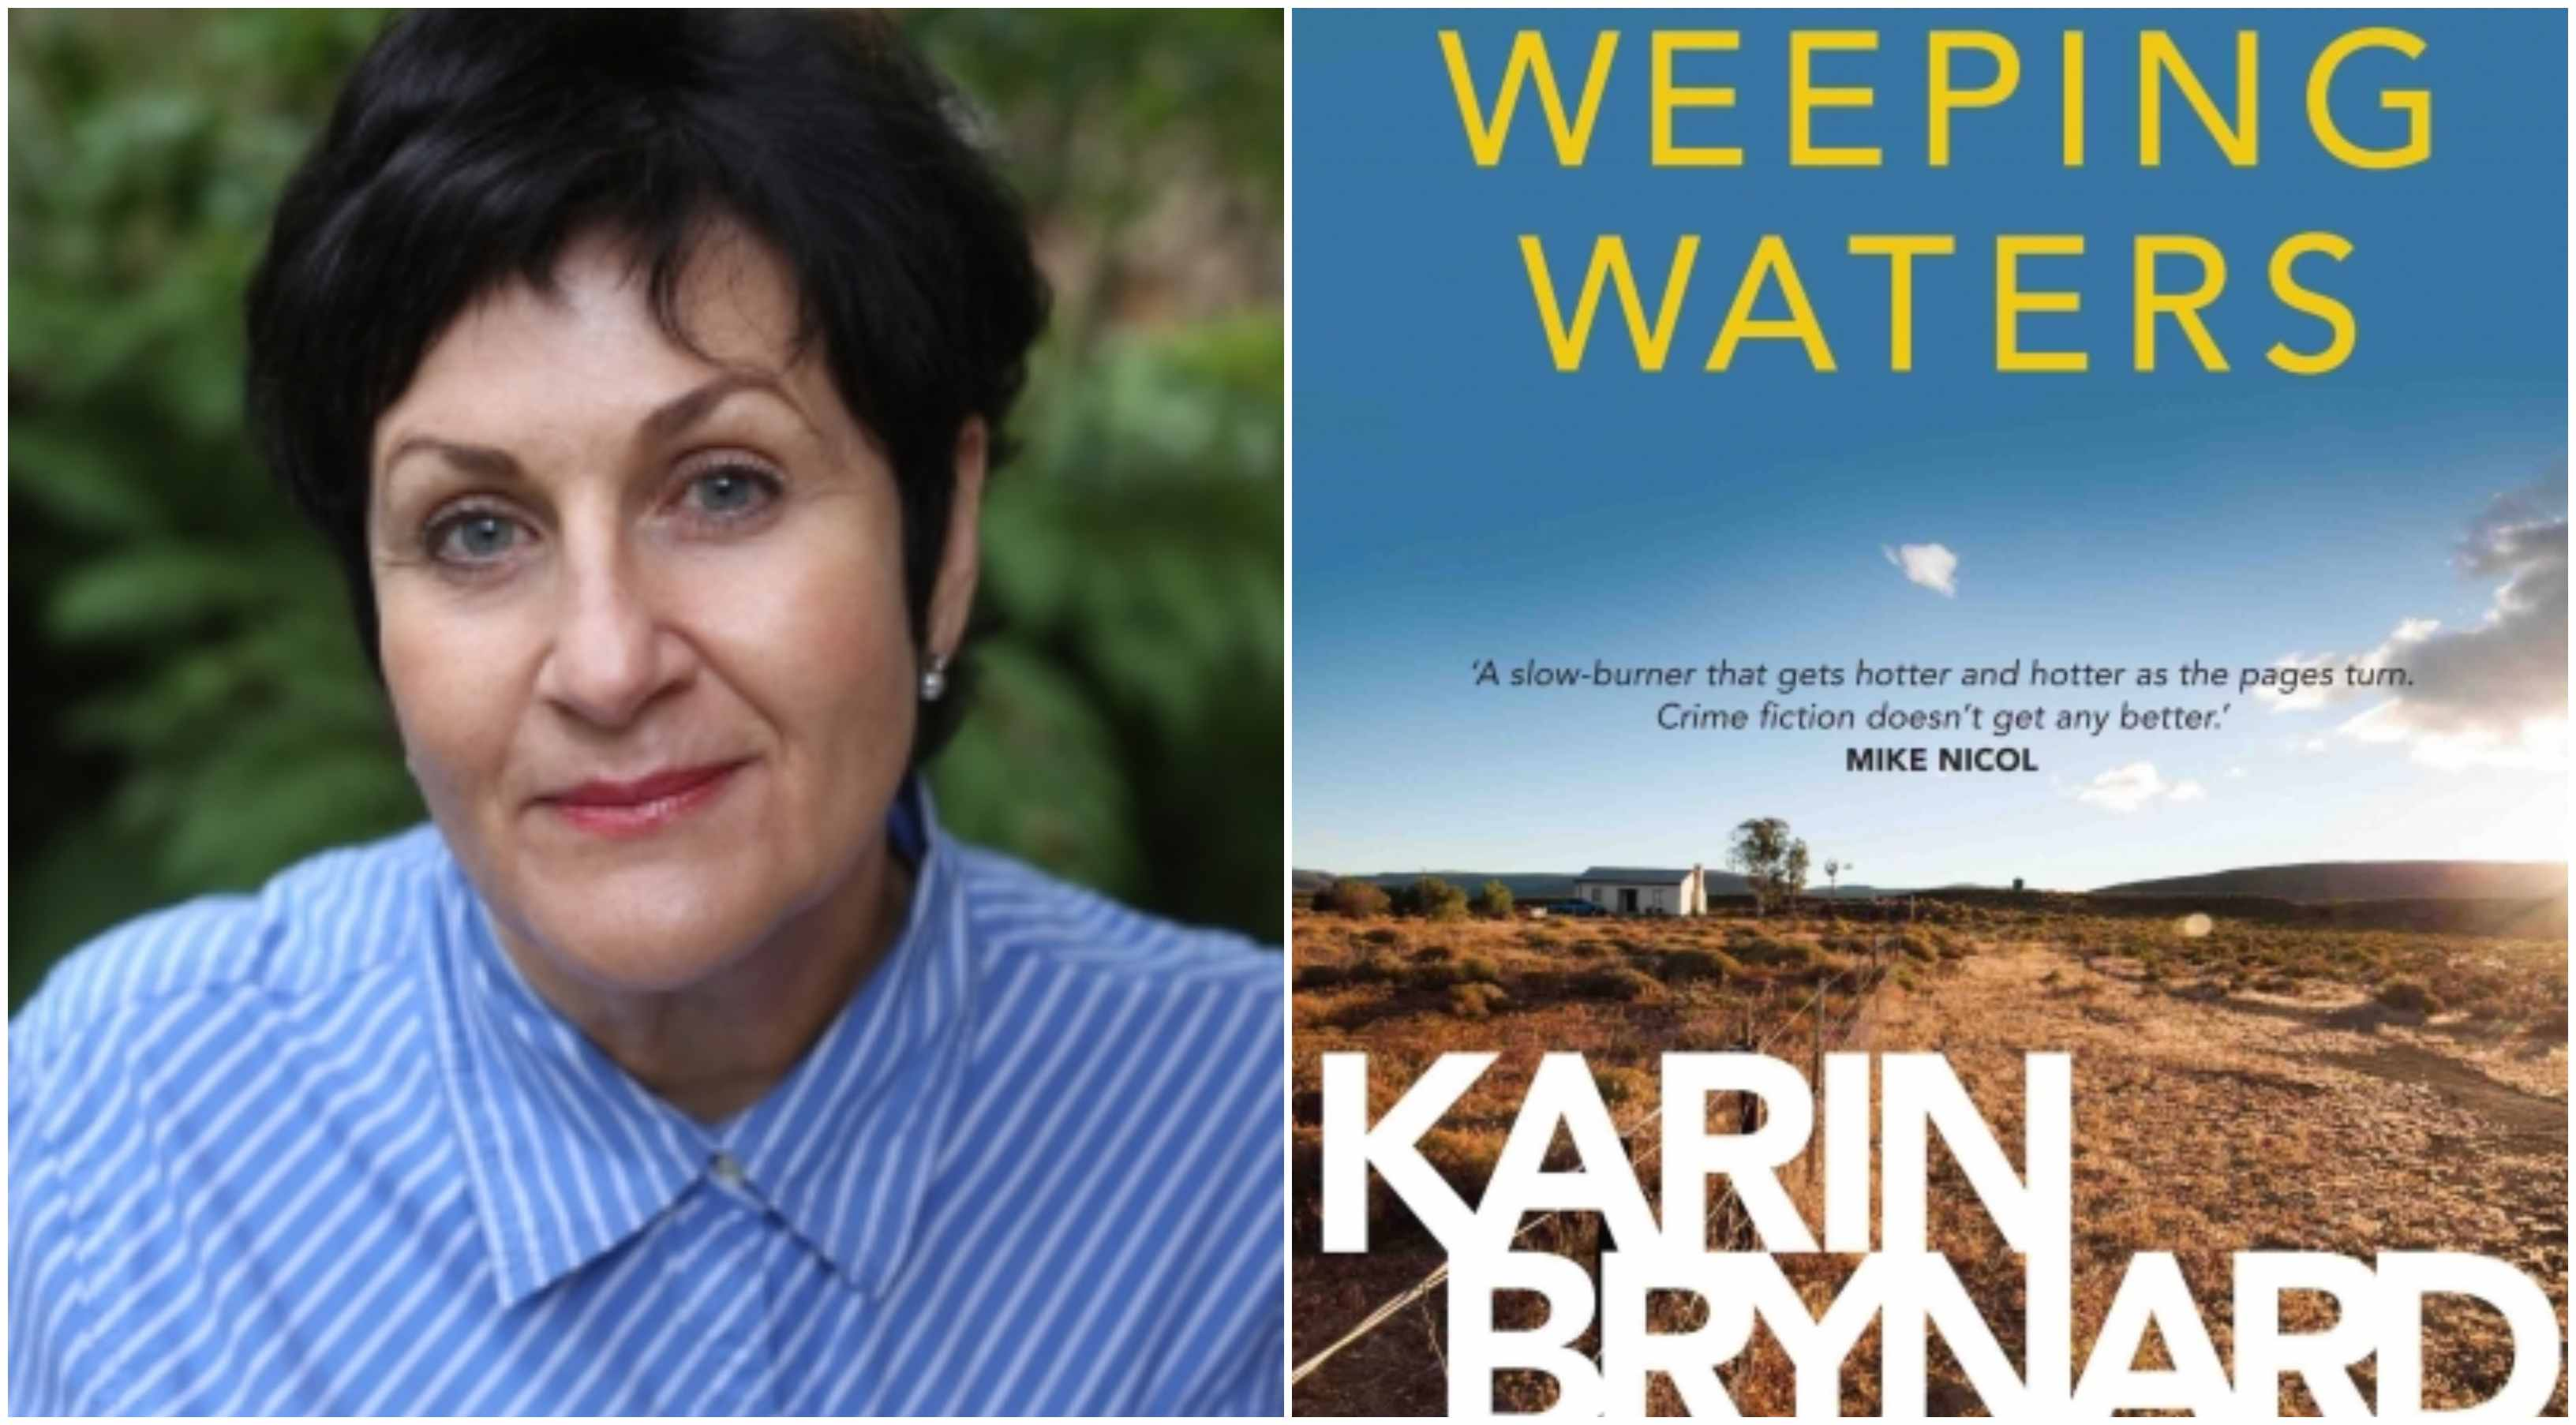 Karin Brynard's 'Weeping Waters' longlisted for International Dagger Award